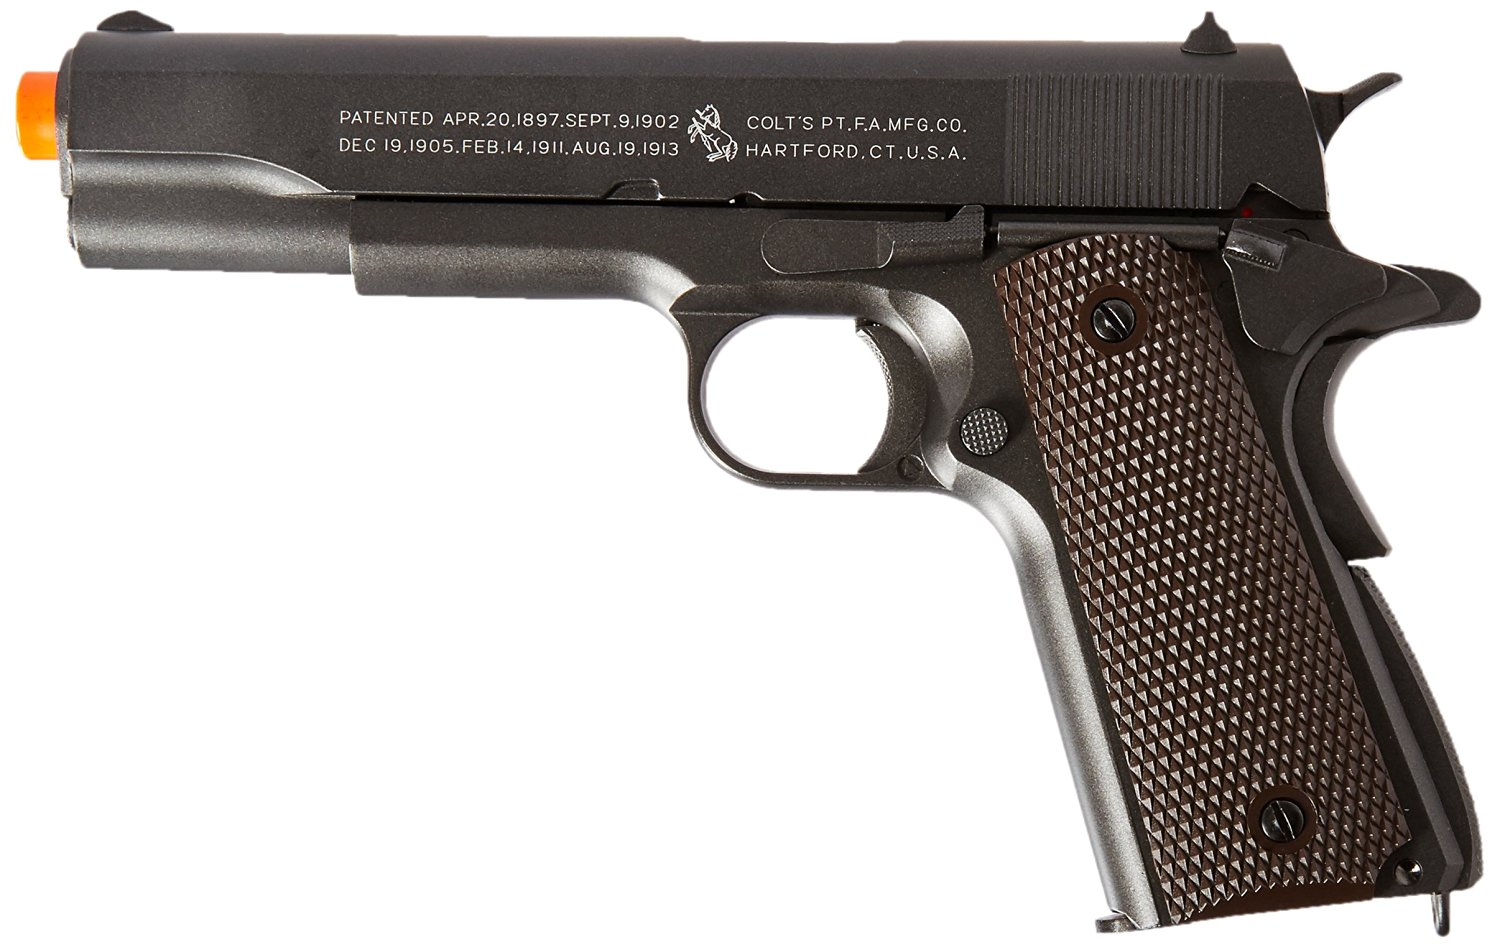 Colt 100Th Anniversary 1911 Co2 Full Metal Airsoft Pistol, 6 mm, Semi-Automatic, Available in 2 Styles